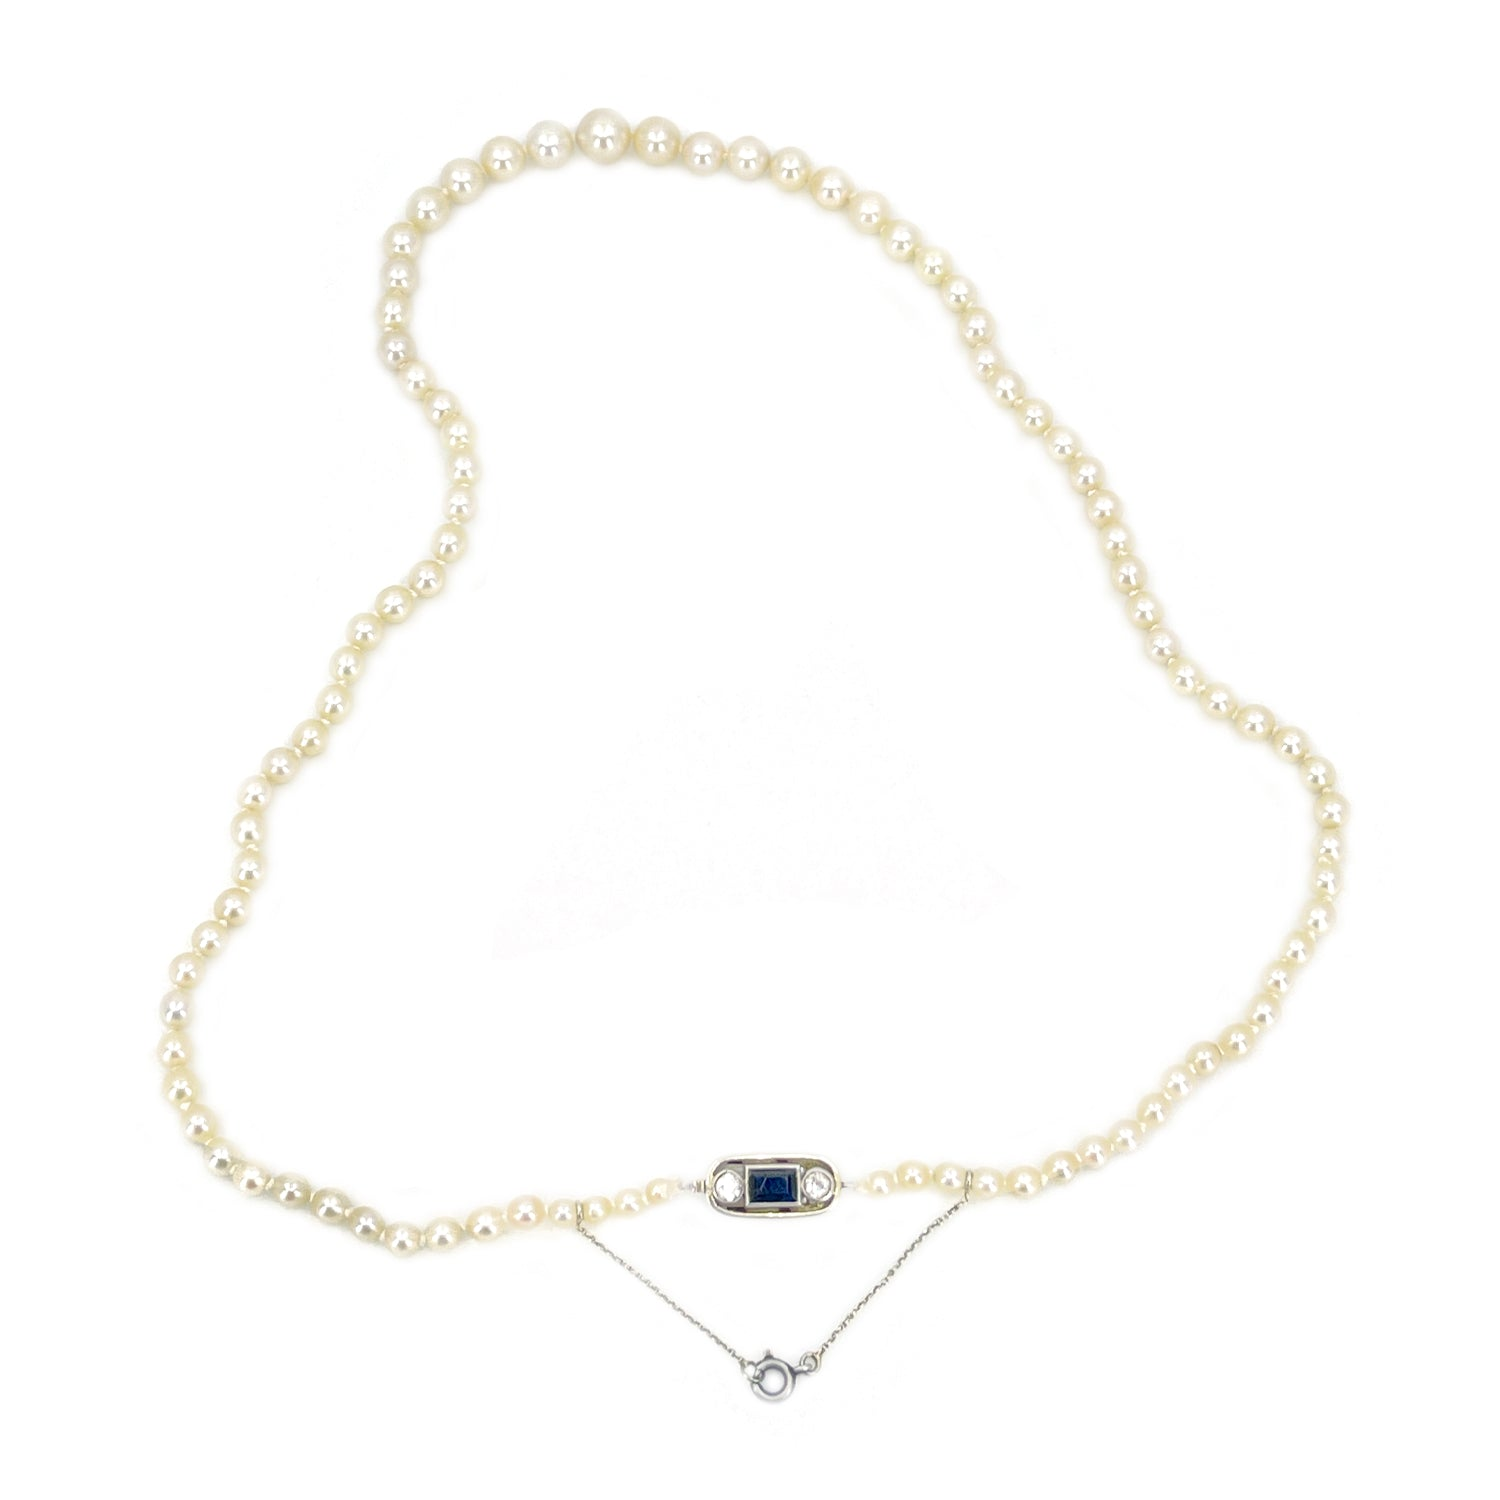 French Art Deco Japanese Cultured Akoya Pearl Spinel Paste Necklace -Sterling Silver 20.50 Inch